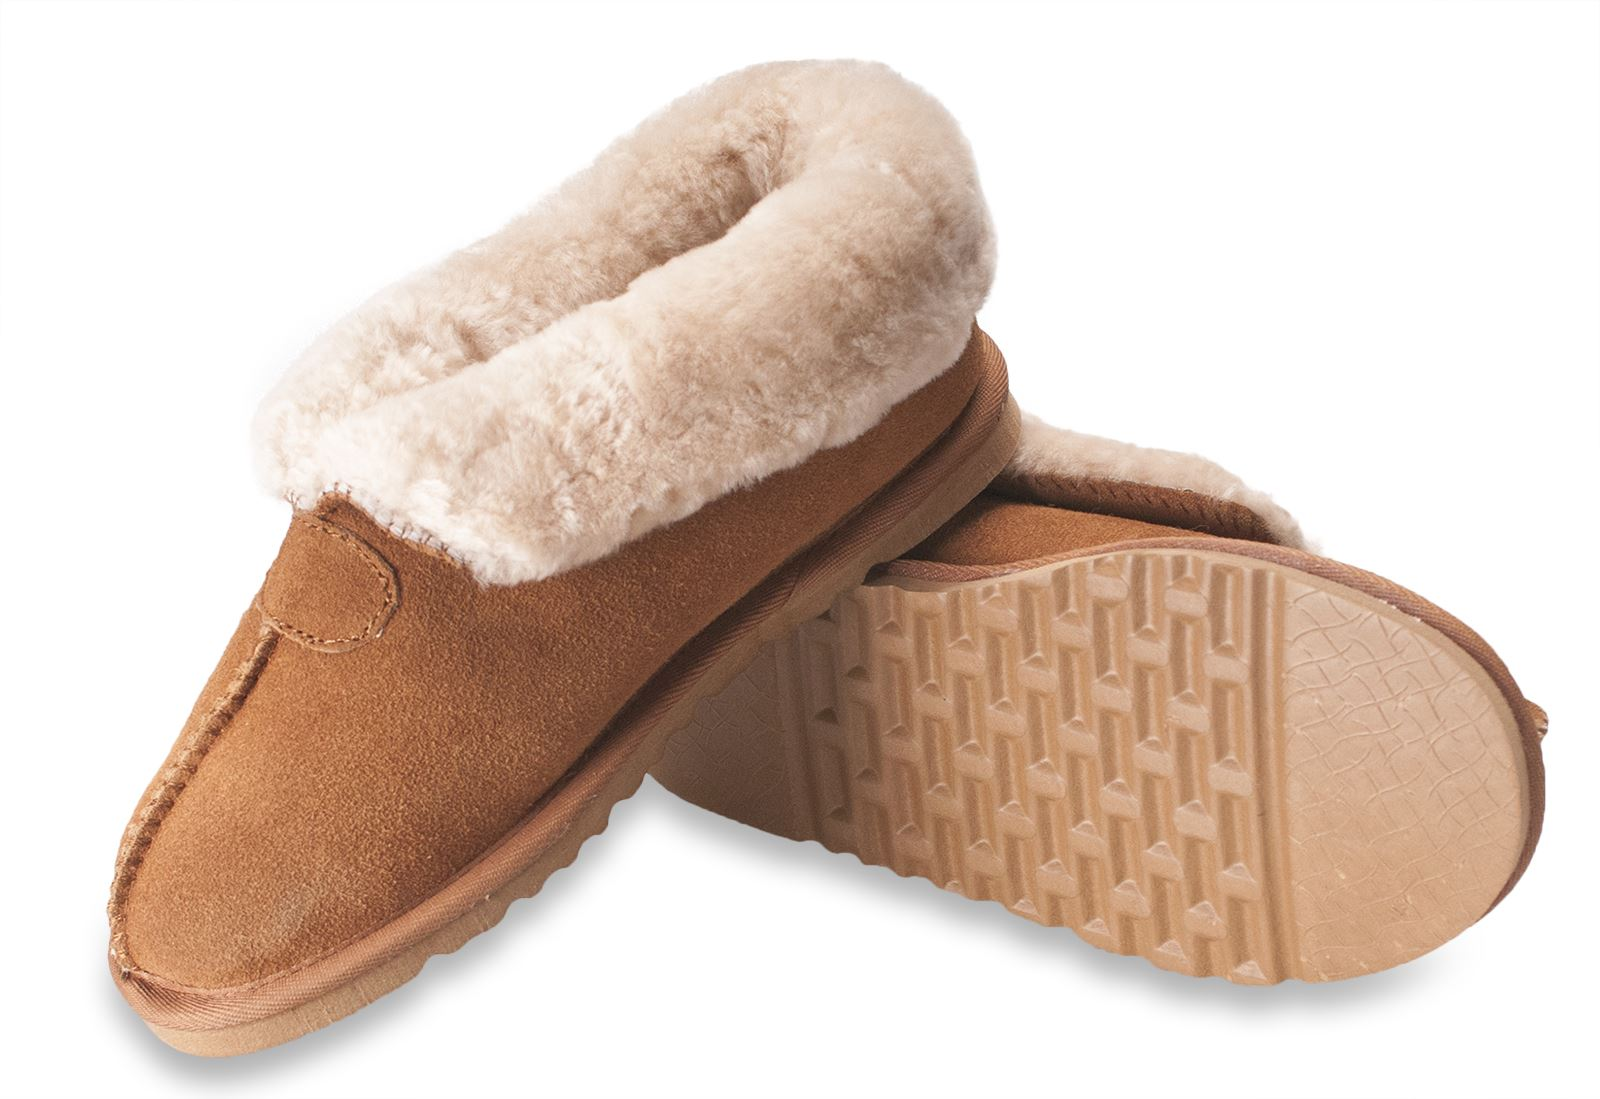 gehedoruqigimate.ml offers 24, rubber slippers women products. About 72% of these are slippers, 10% are sandals, and 3% are hotel amenities. A wide variety of rubber slippers women options are available to you, such as autumn, spring, and summer.